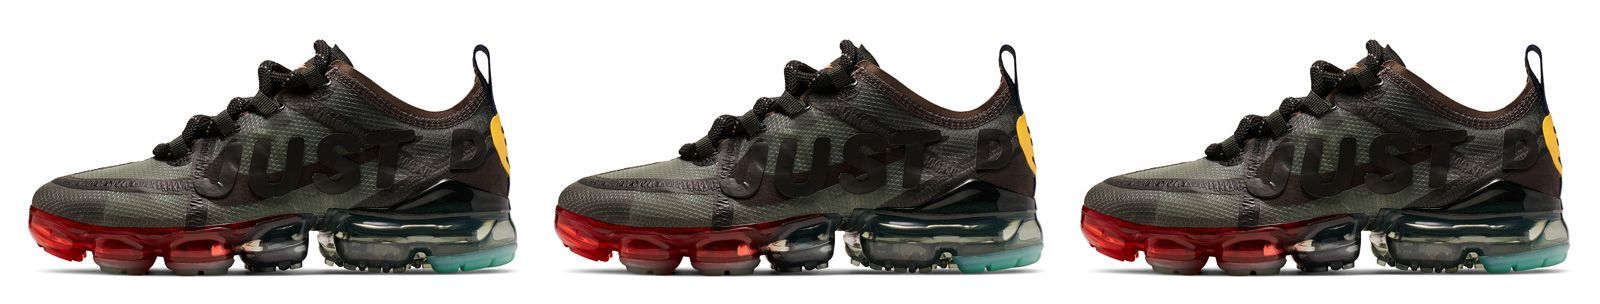 1e71f0ae92103 CPFM x Nike Air VaporMax 2019 launches Tuesday May 14th at in-store Dover  Street Market New York via online raffle. For the opportunity to purchase